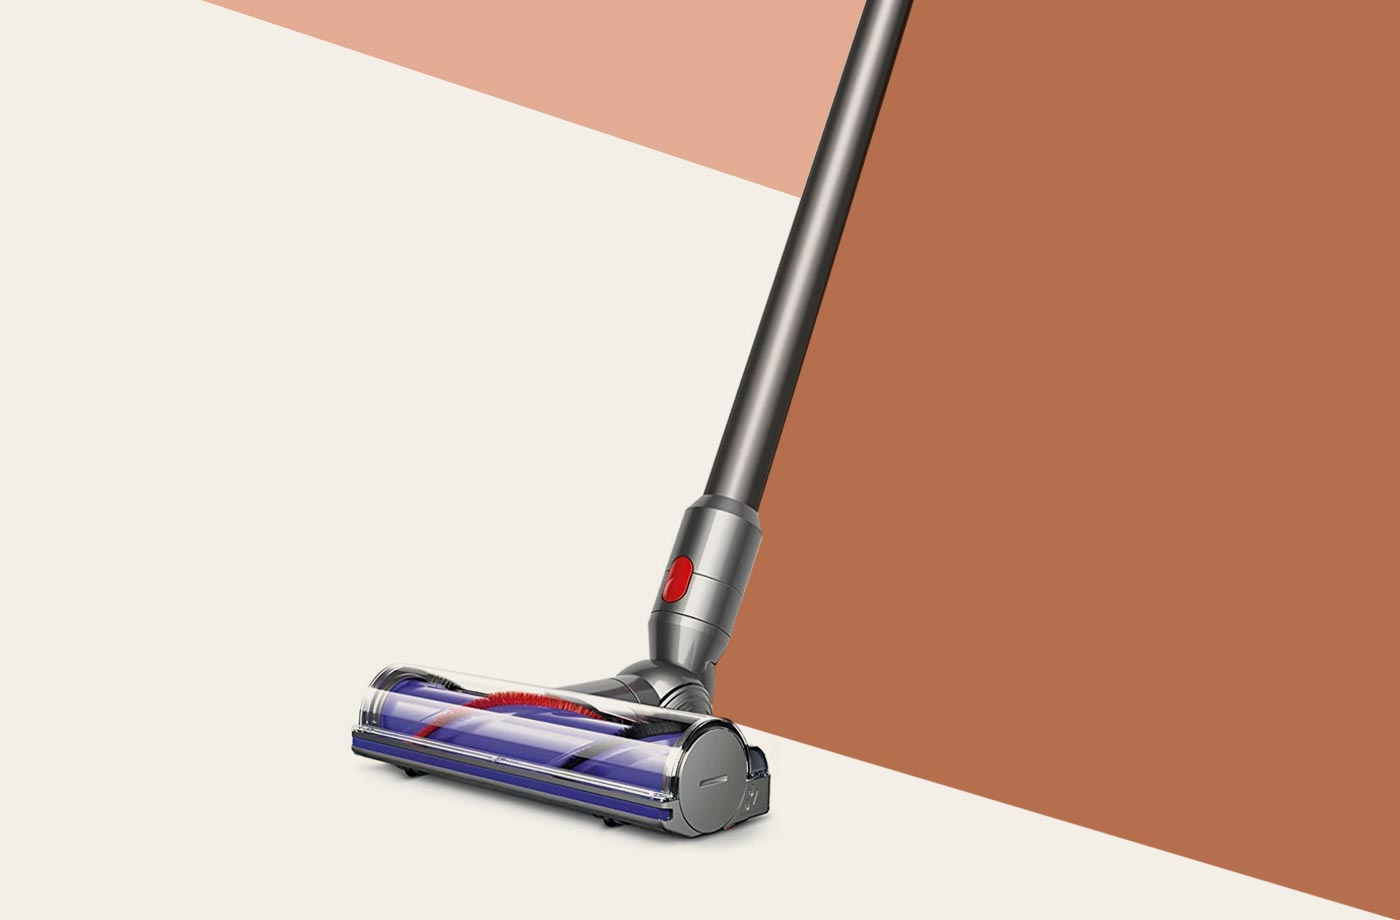 Thumbnail for This Bestselling Dyson Vacuum Is 38% Off Right Now